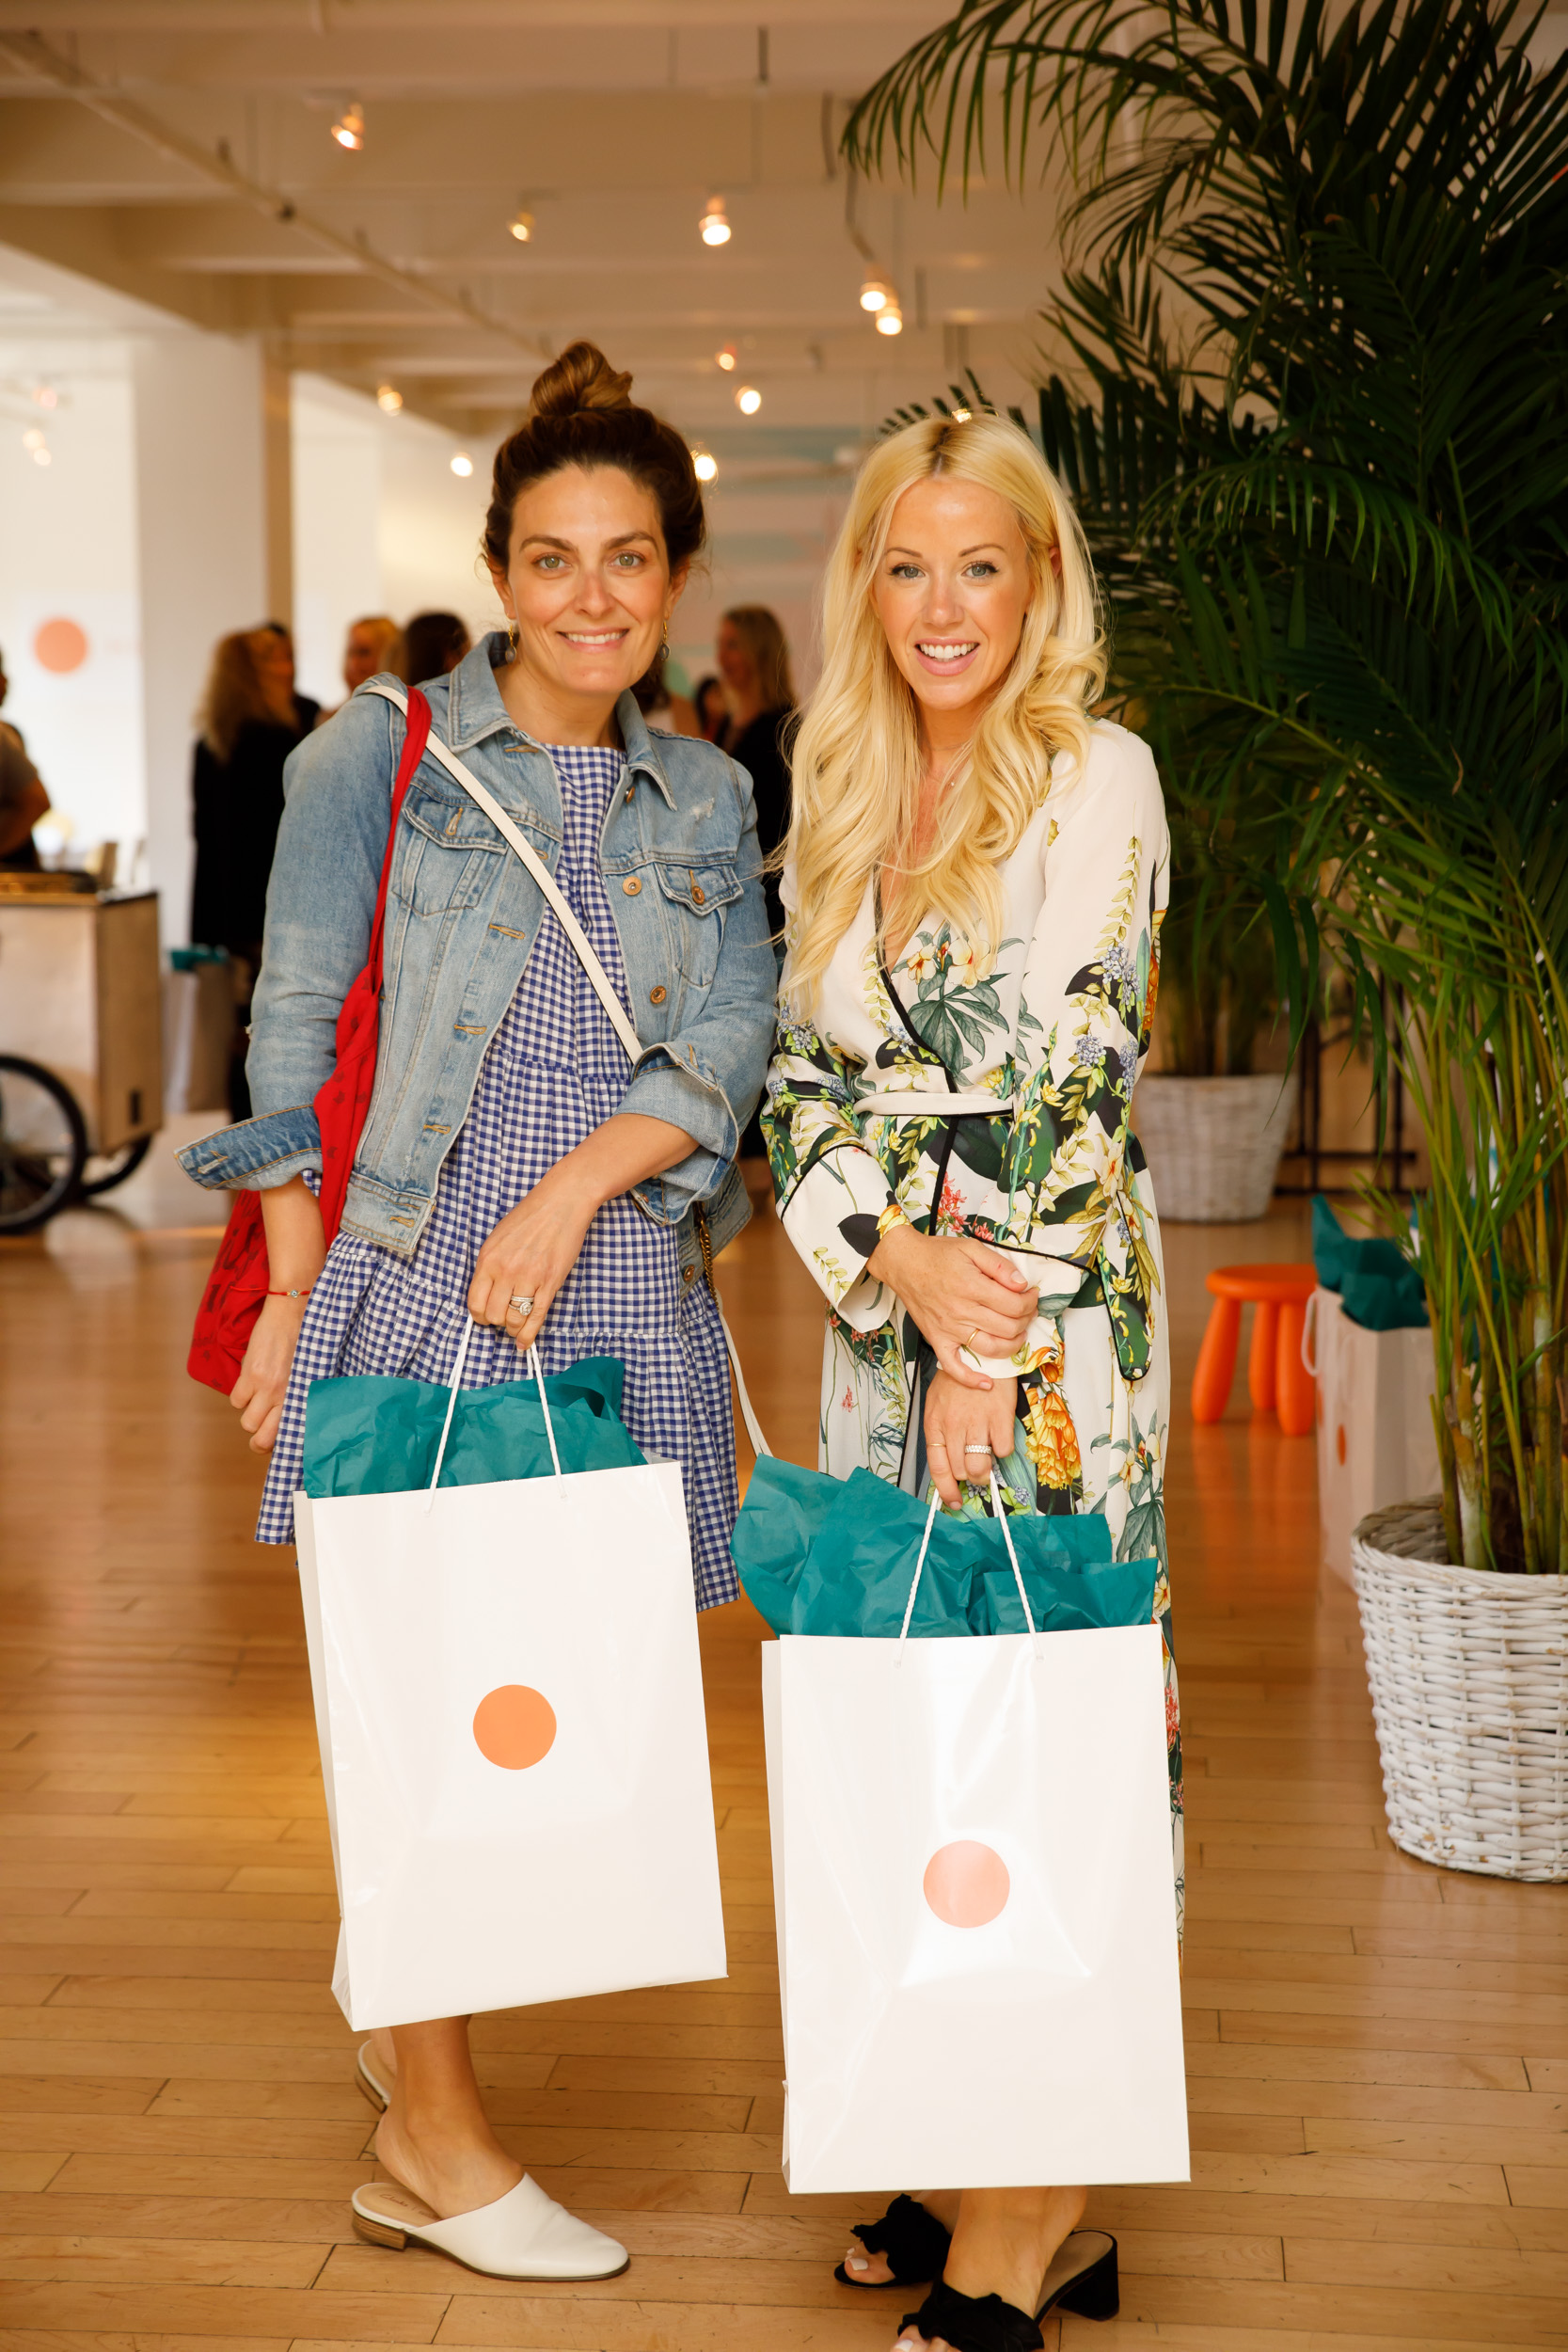 We all left with amazing gift bags with perfect summer beach towels, perfect headphones to zone out with  Headspace  and much more